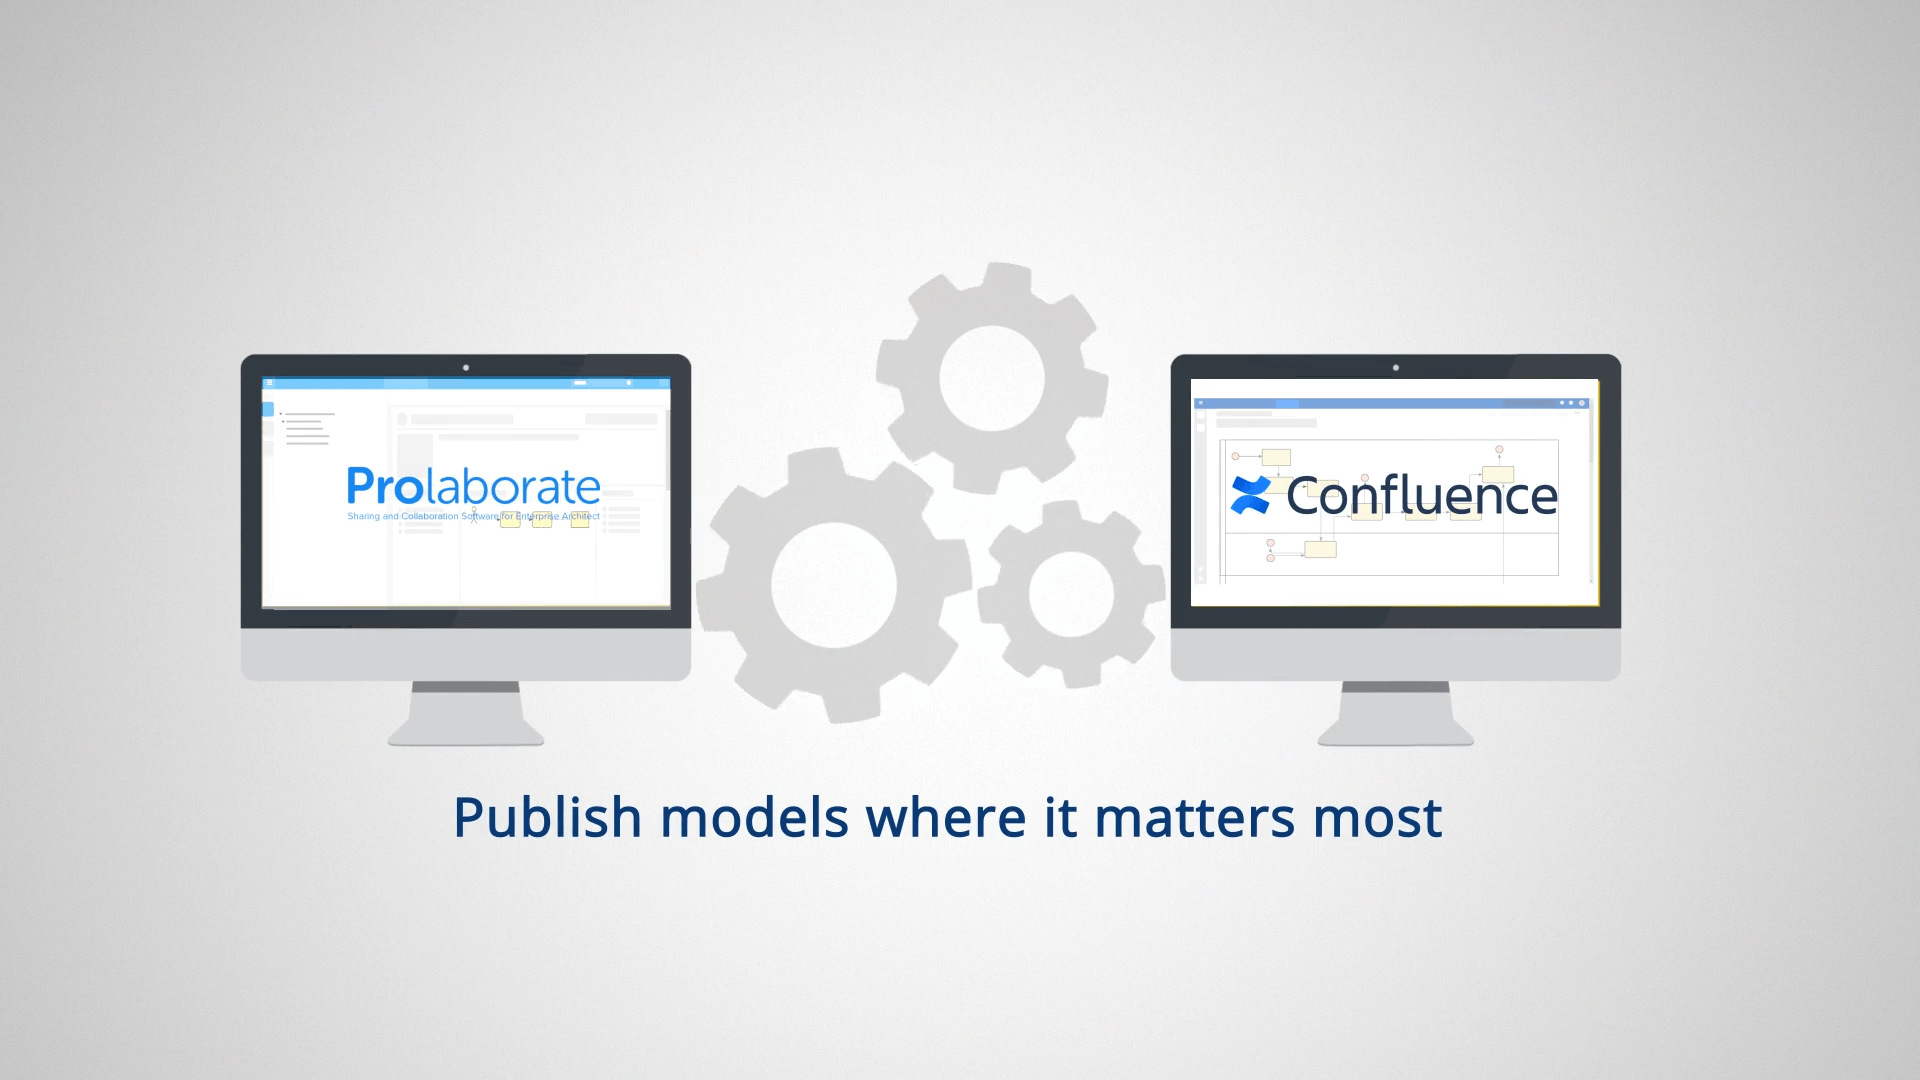 Share Sparx EA models in Confluence